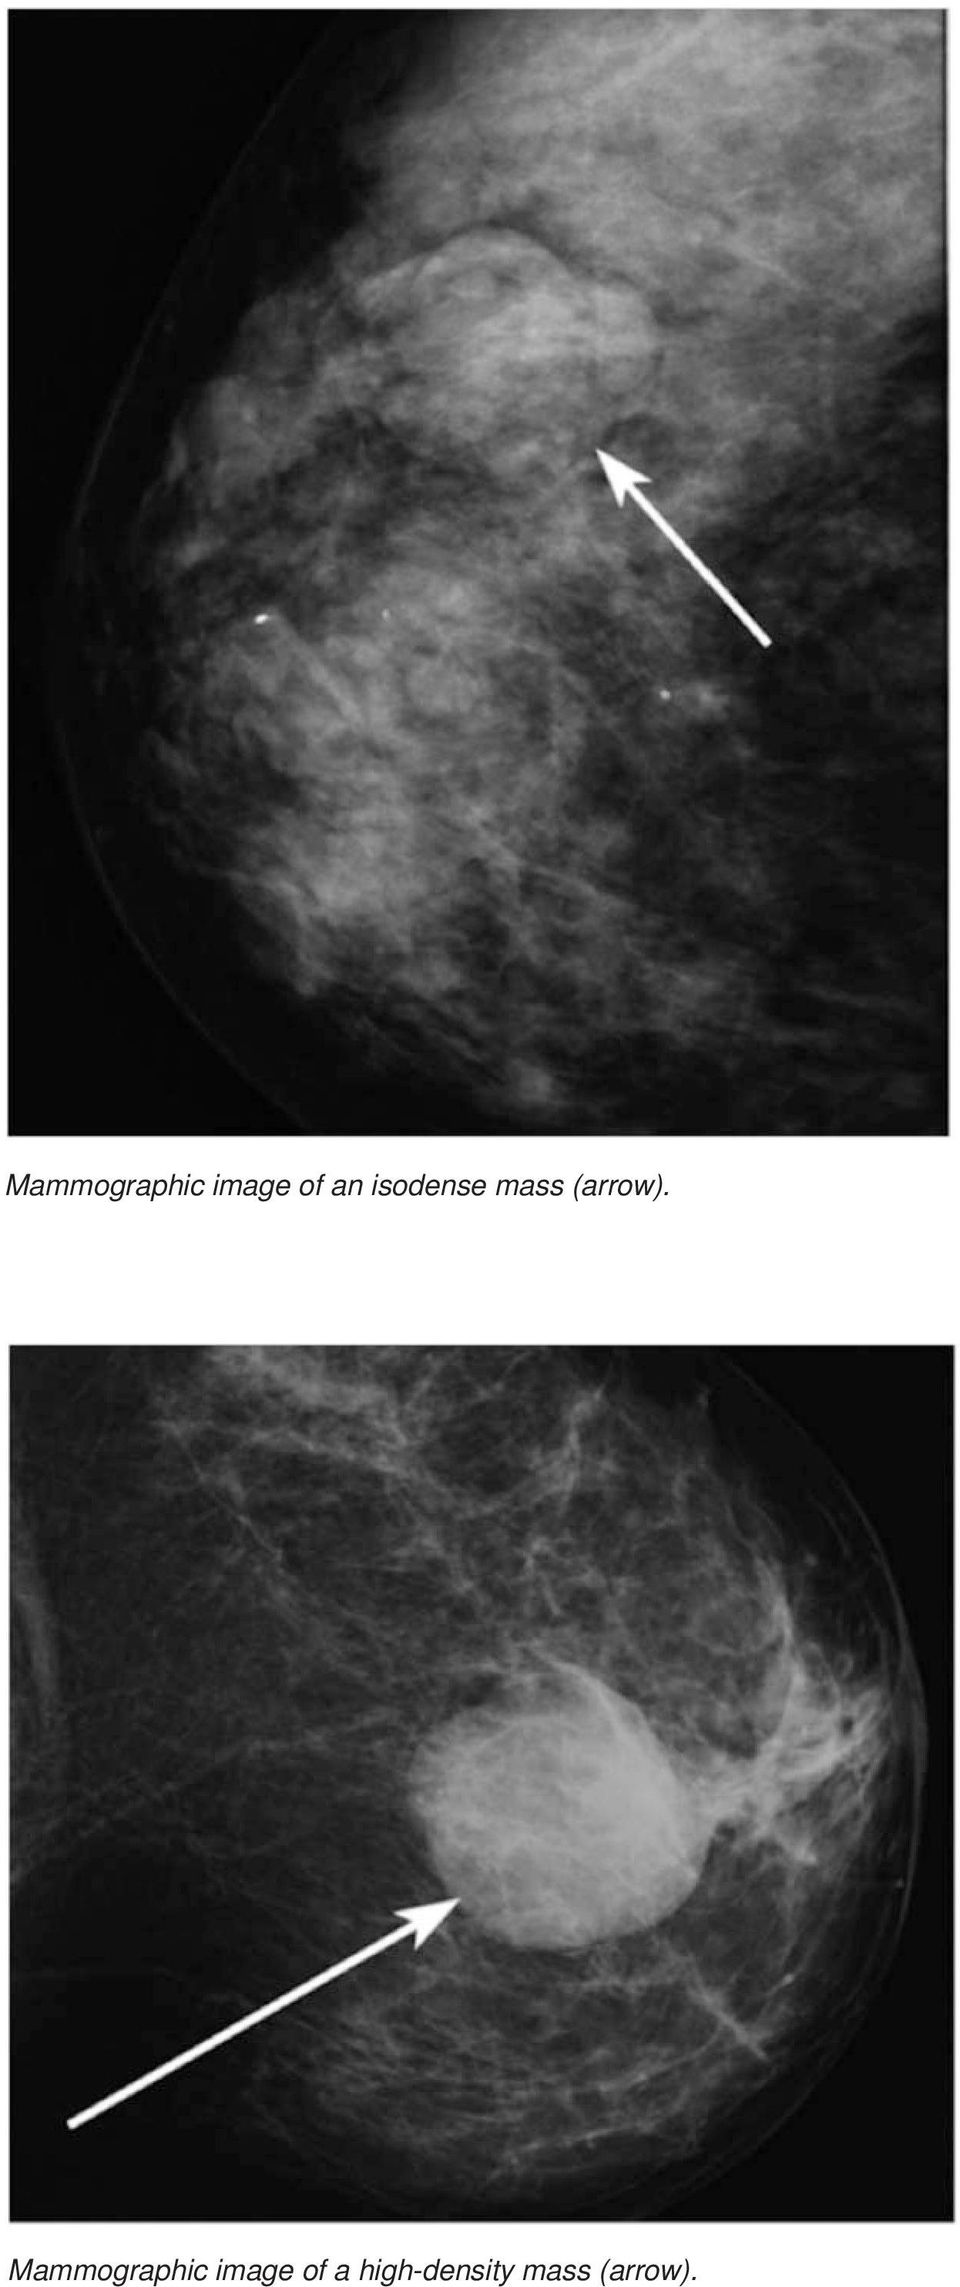 Mammographic image of a